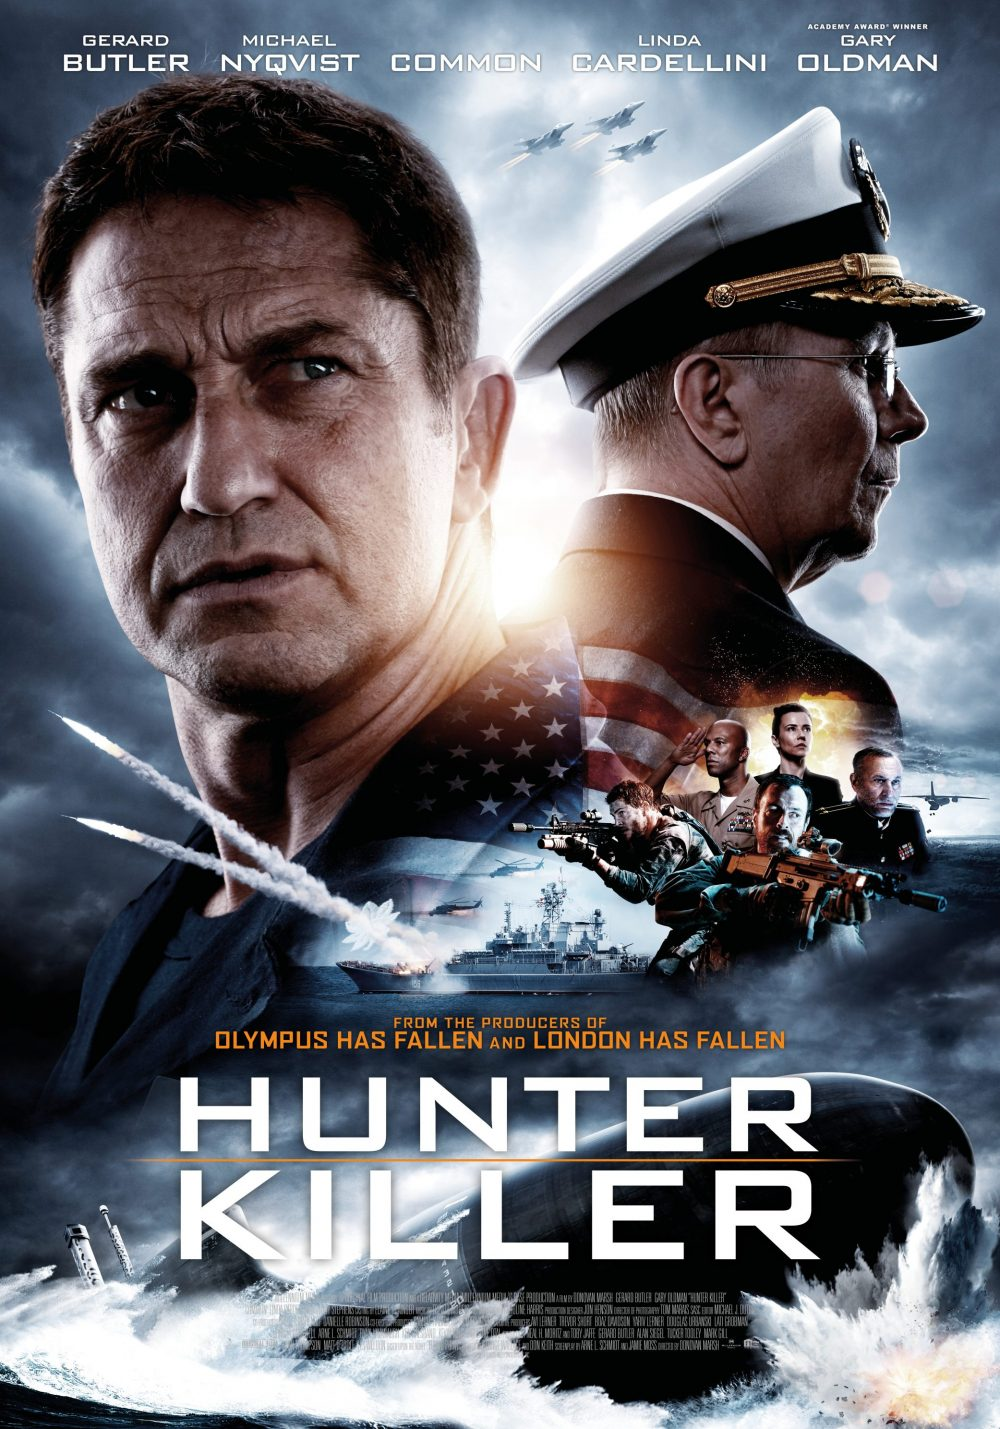 2003886_70x100_poster-theatrical_hunterkiller70x100_swe_print